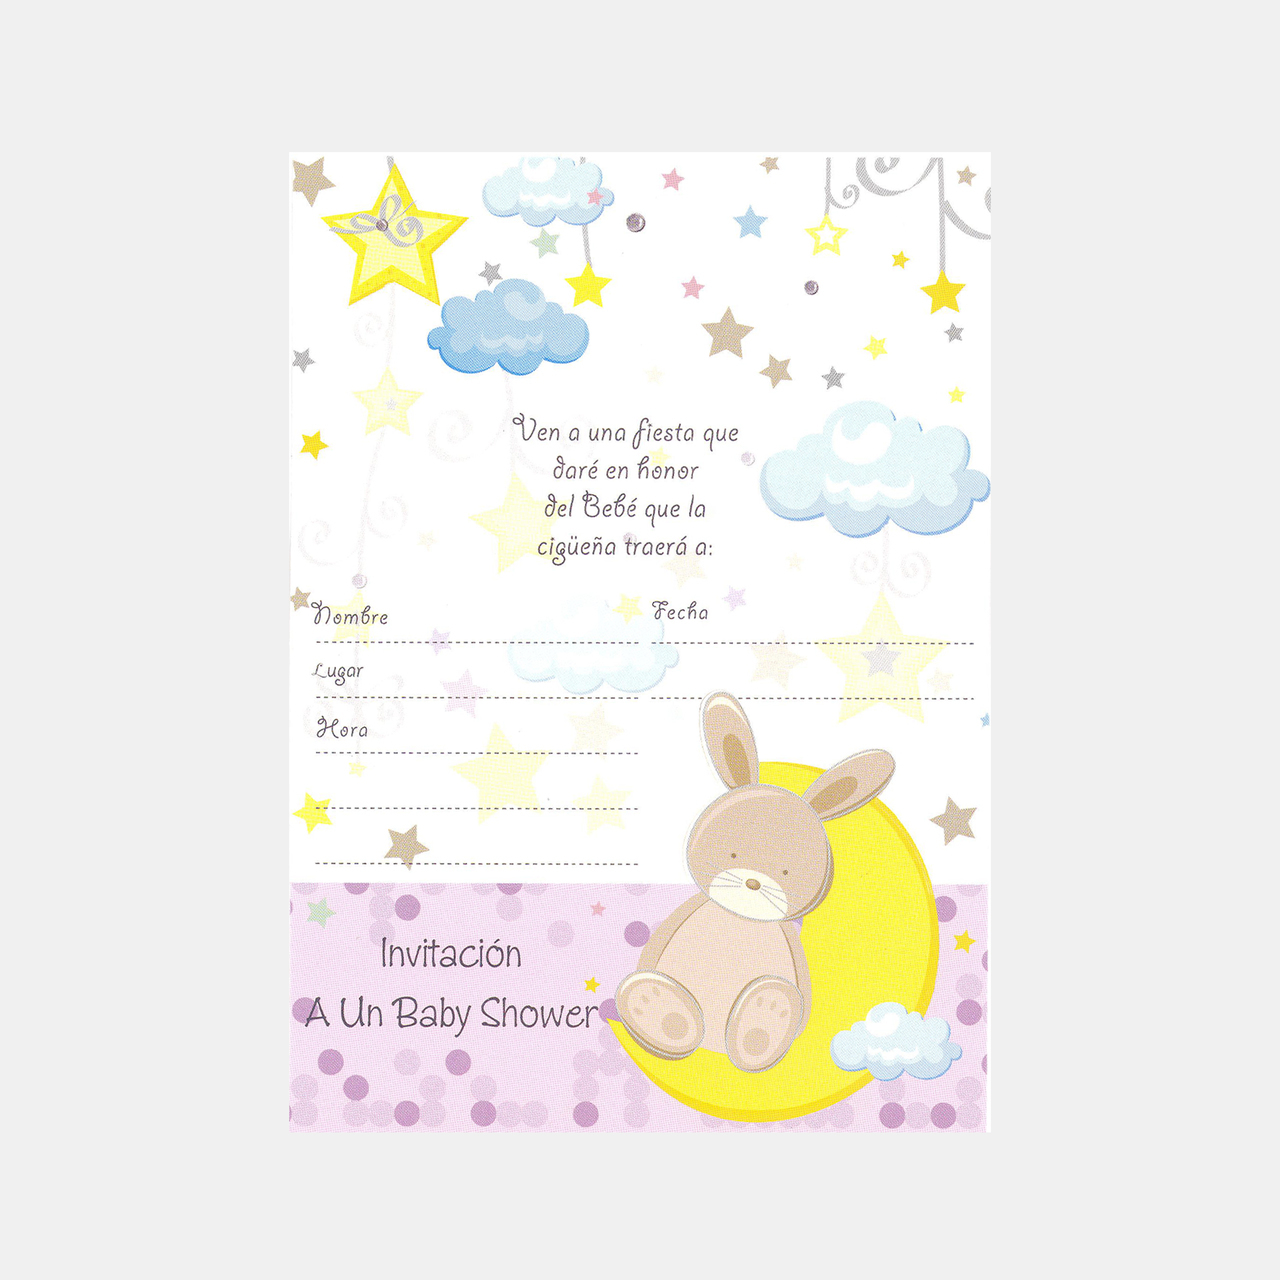 BABY SHOWER INVITATION CARDS – Spanish – ABI USA Group